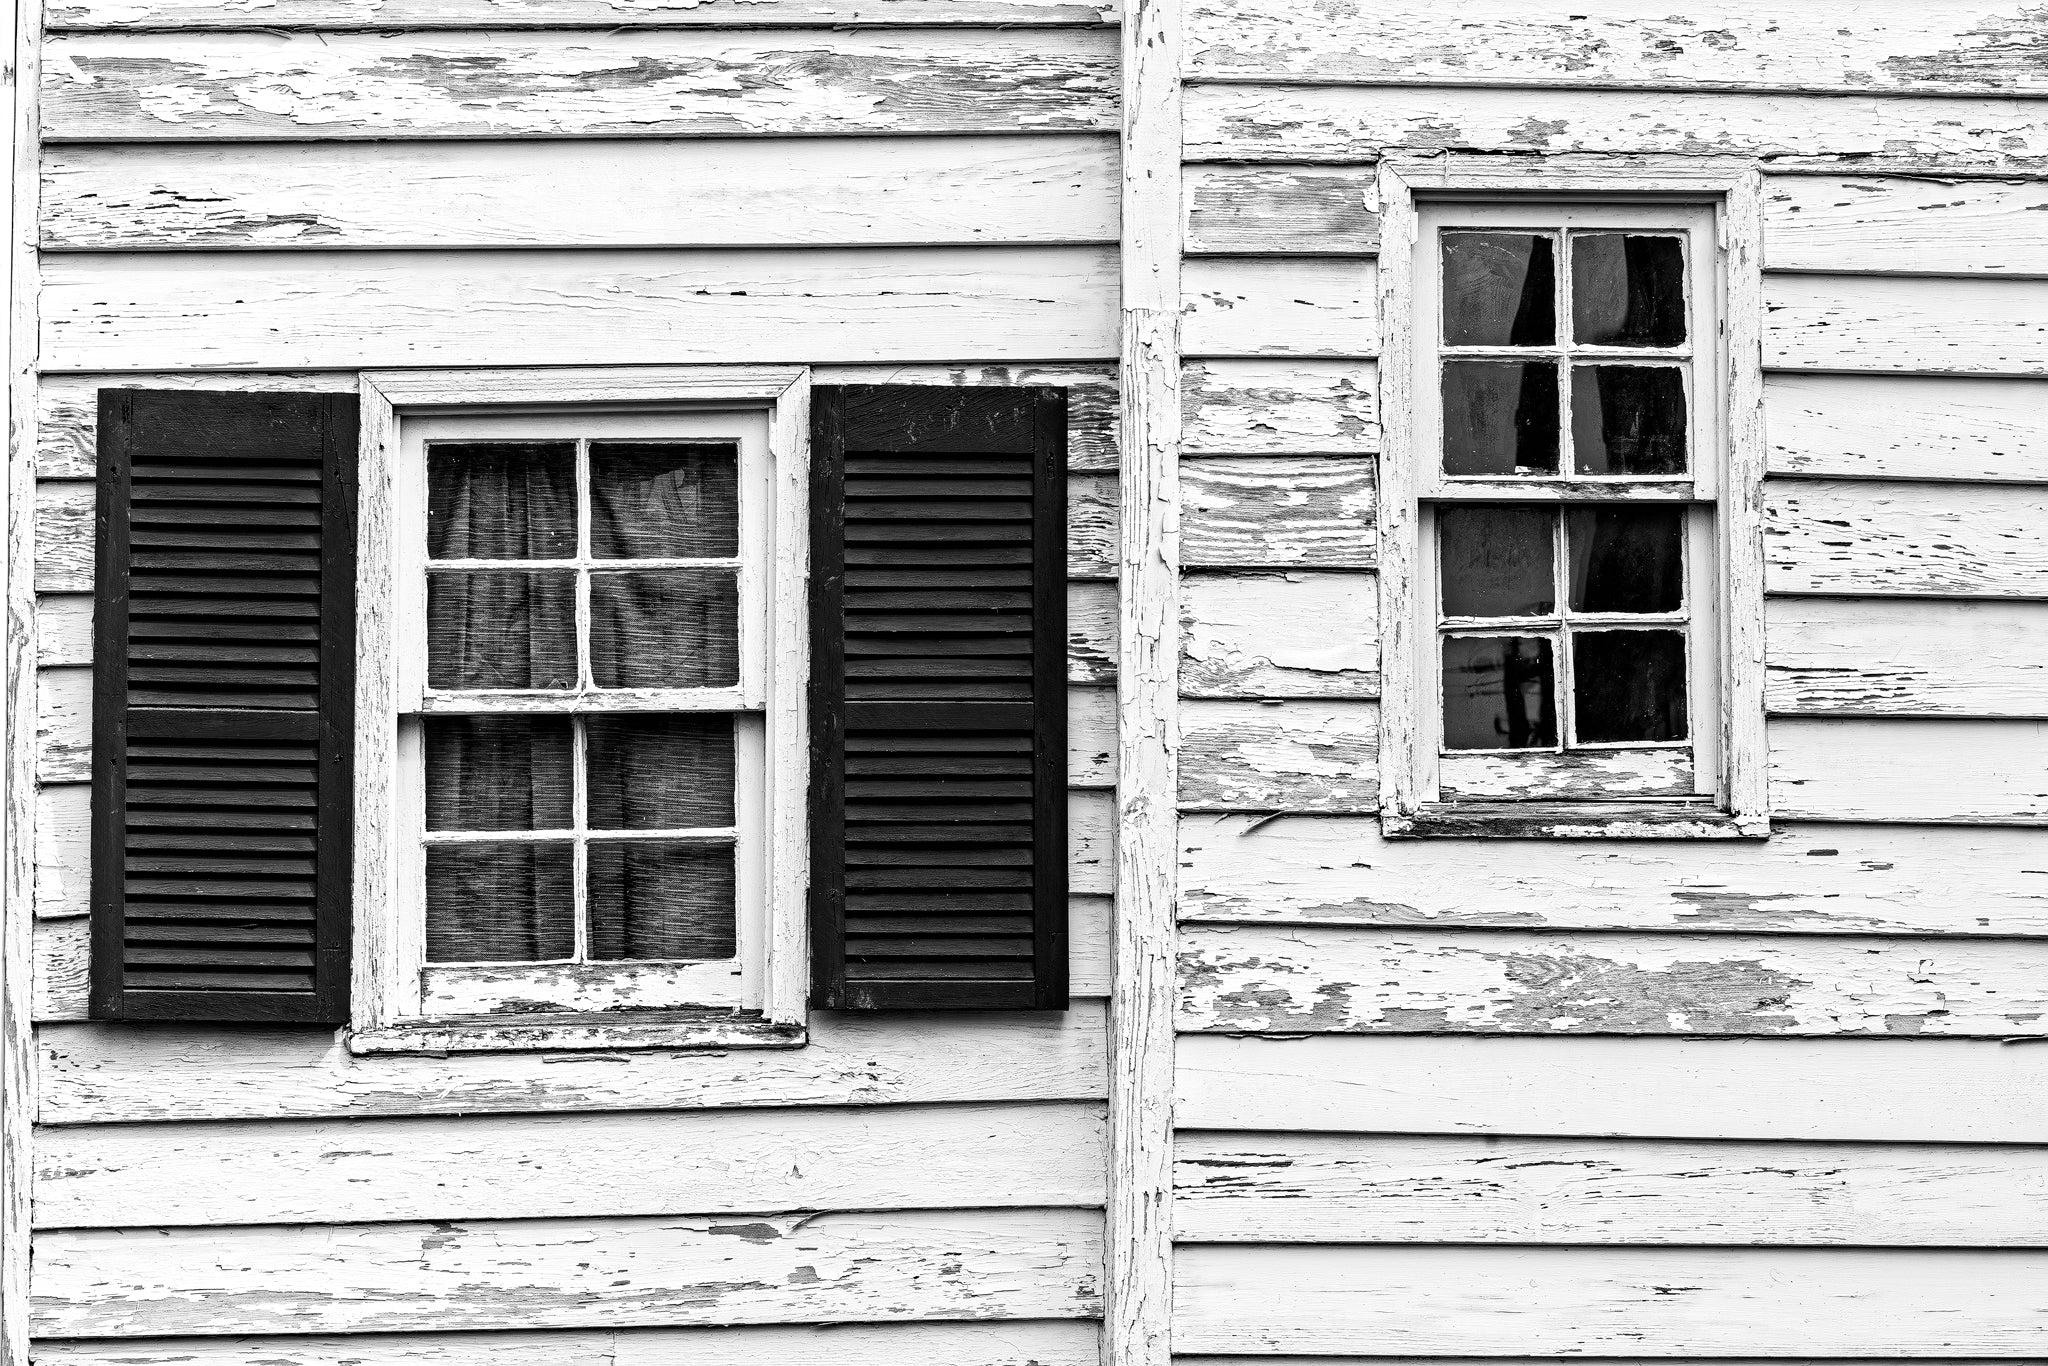 Charleston Two Windows of an Old House - Black and White Photograph by Keith Dotson. Buy a fine art print.